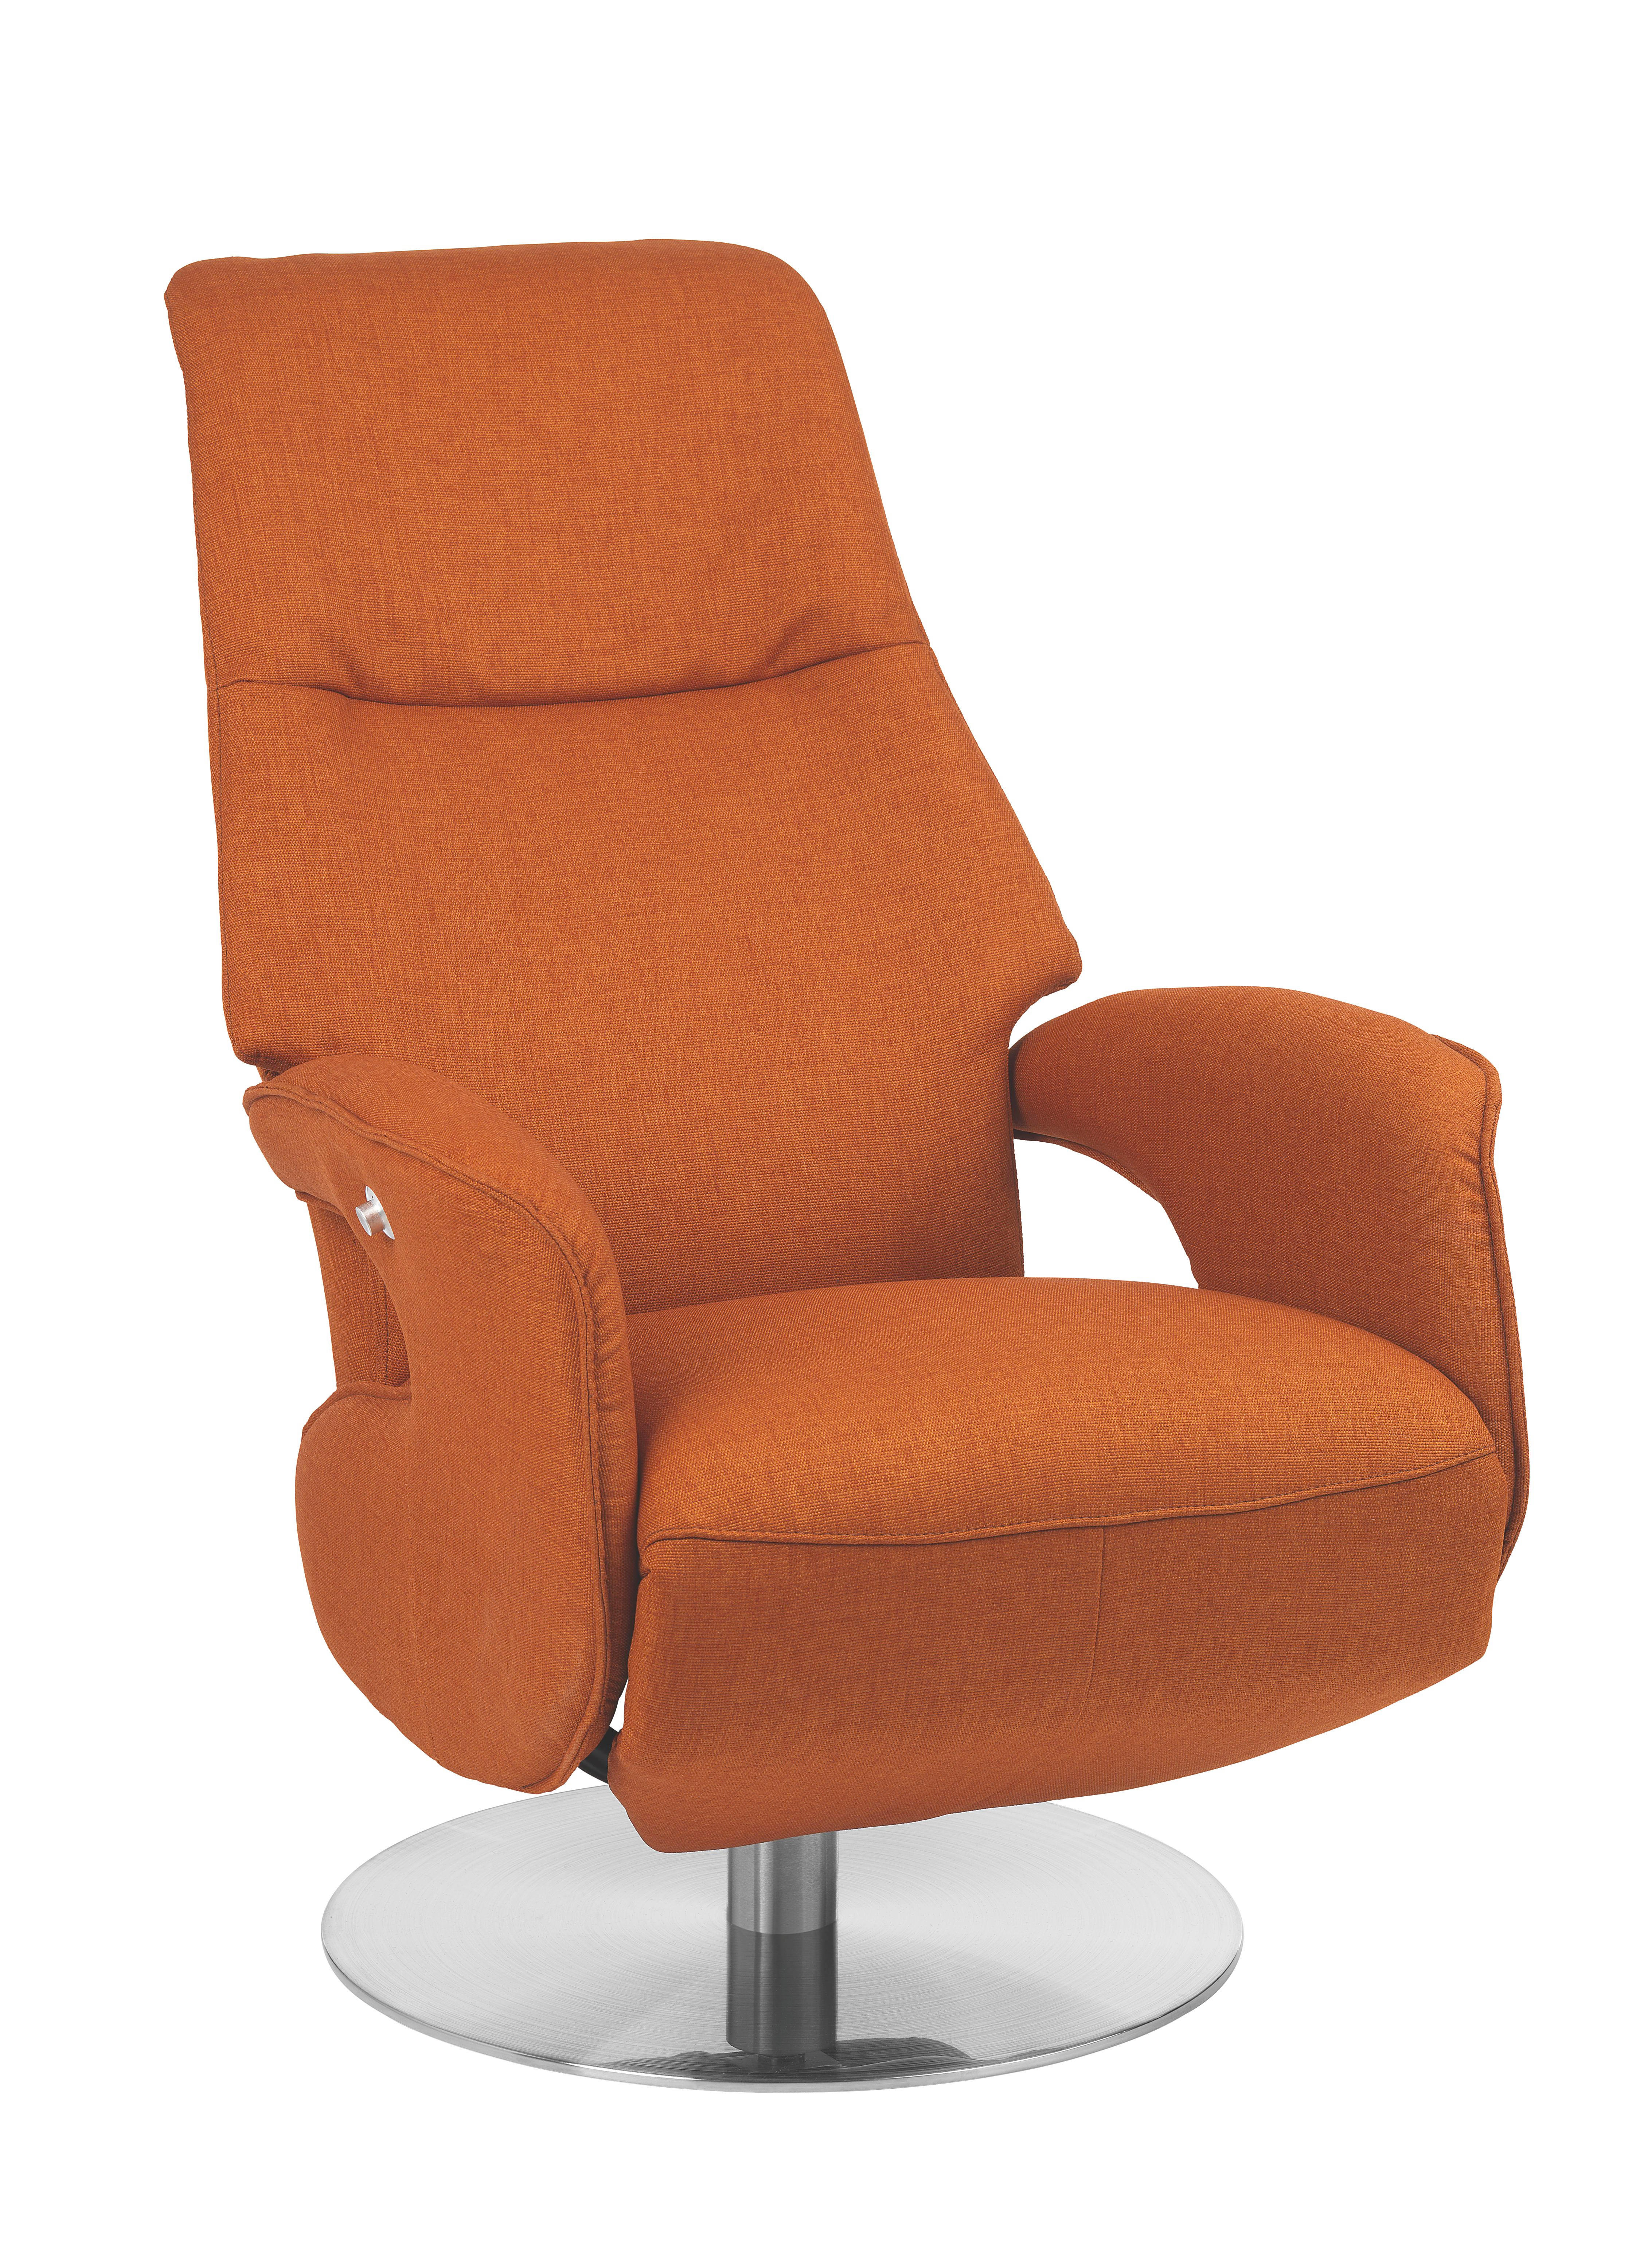 Welnova Relaxsessel Relaxsessel In Textil Orange